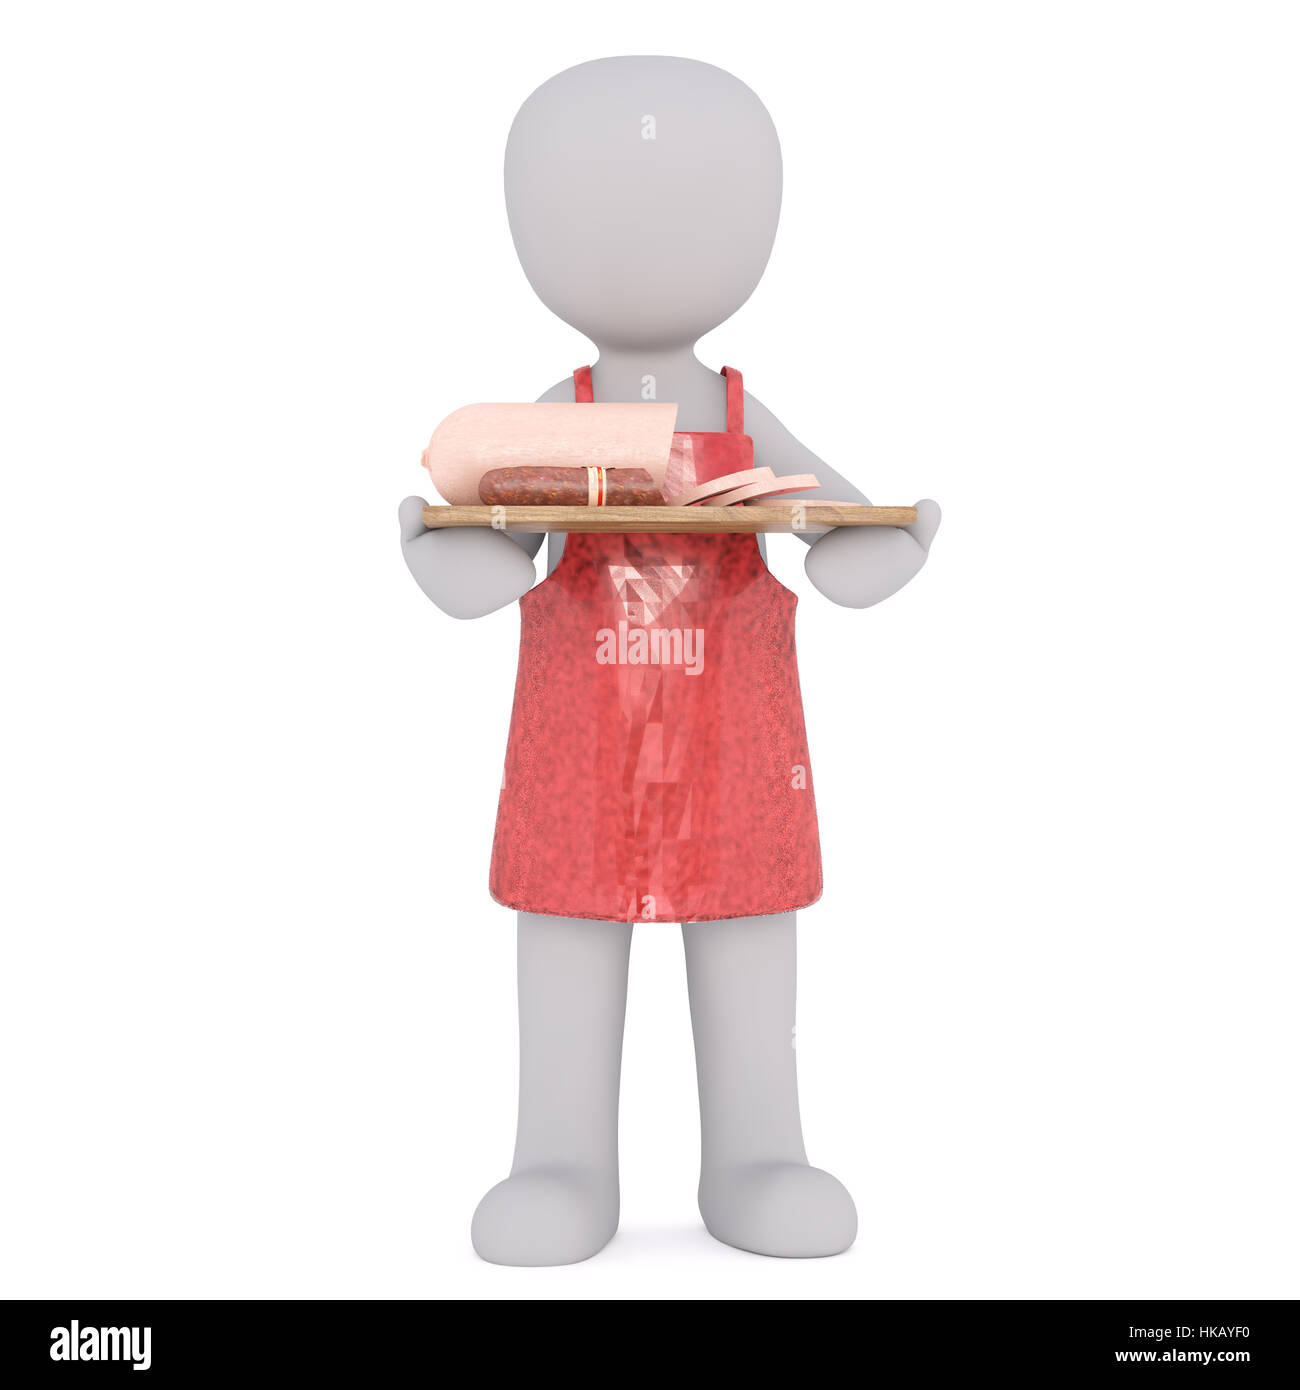 White apron meats - Generic 3d Rendered Cartoon Character Wearing Red Apron And Holding Tray With Variety Of Deli Sliced Meats In Front Of White Background